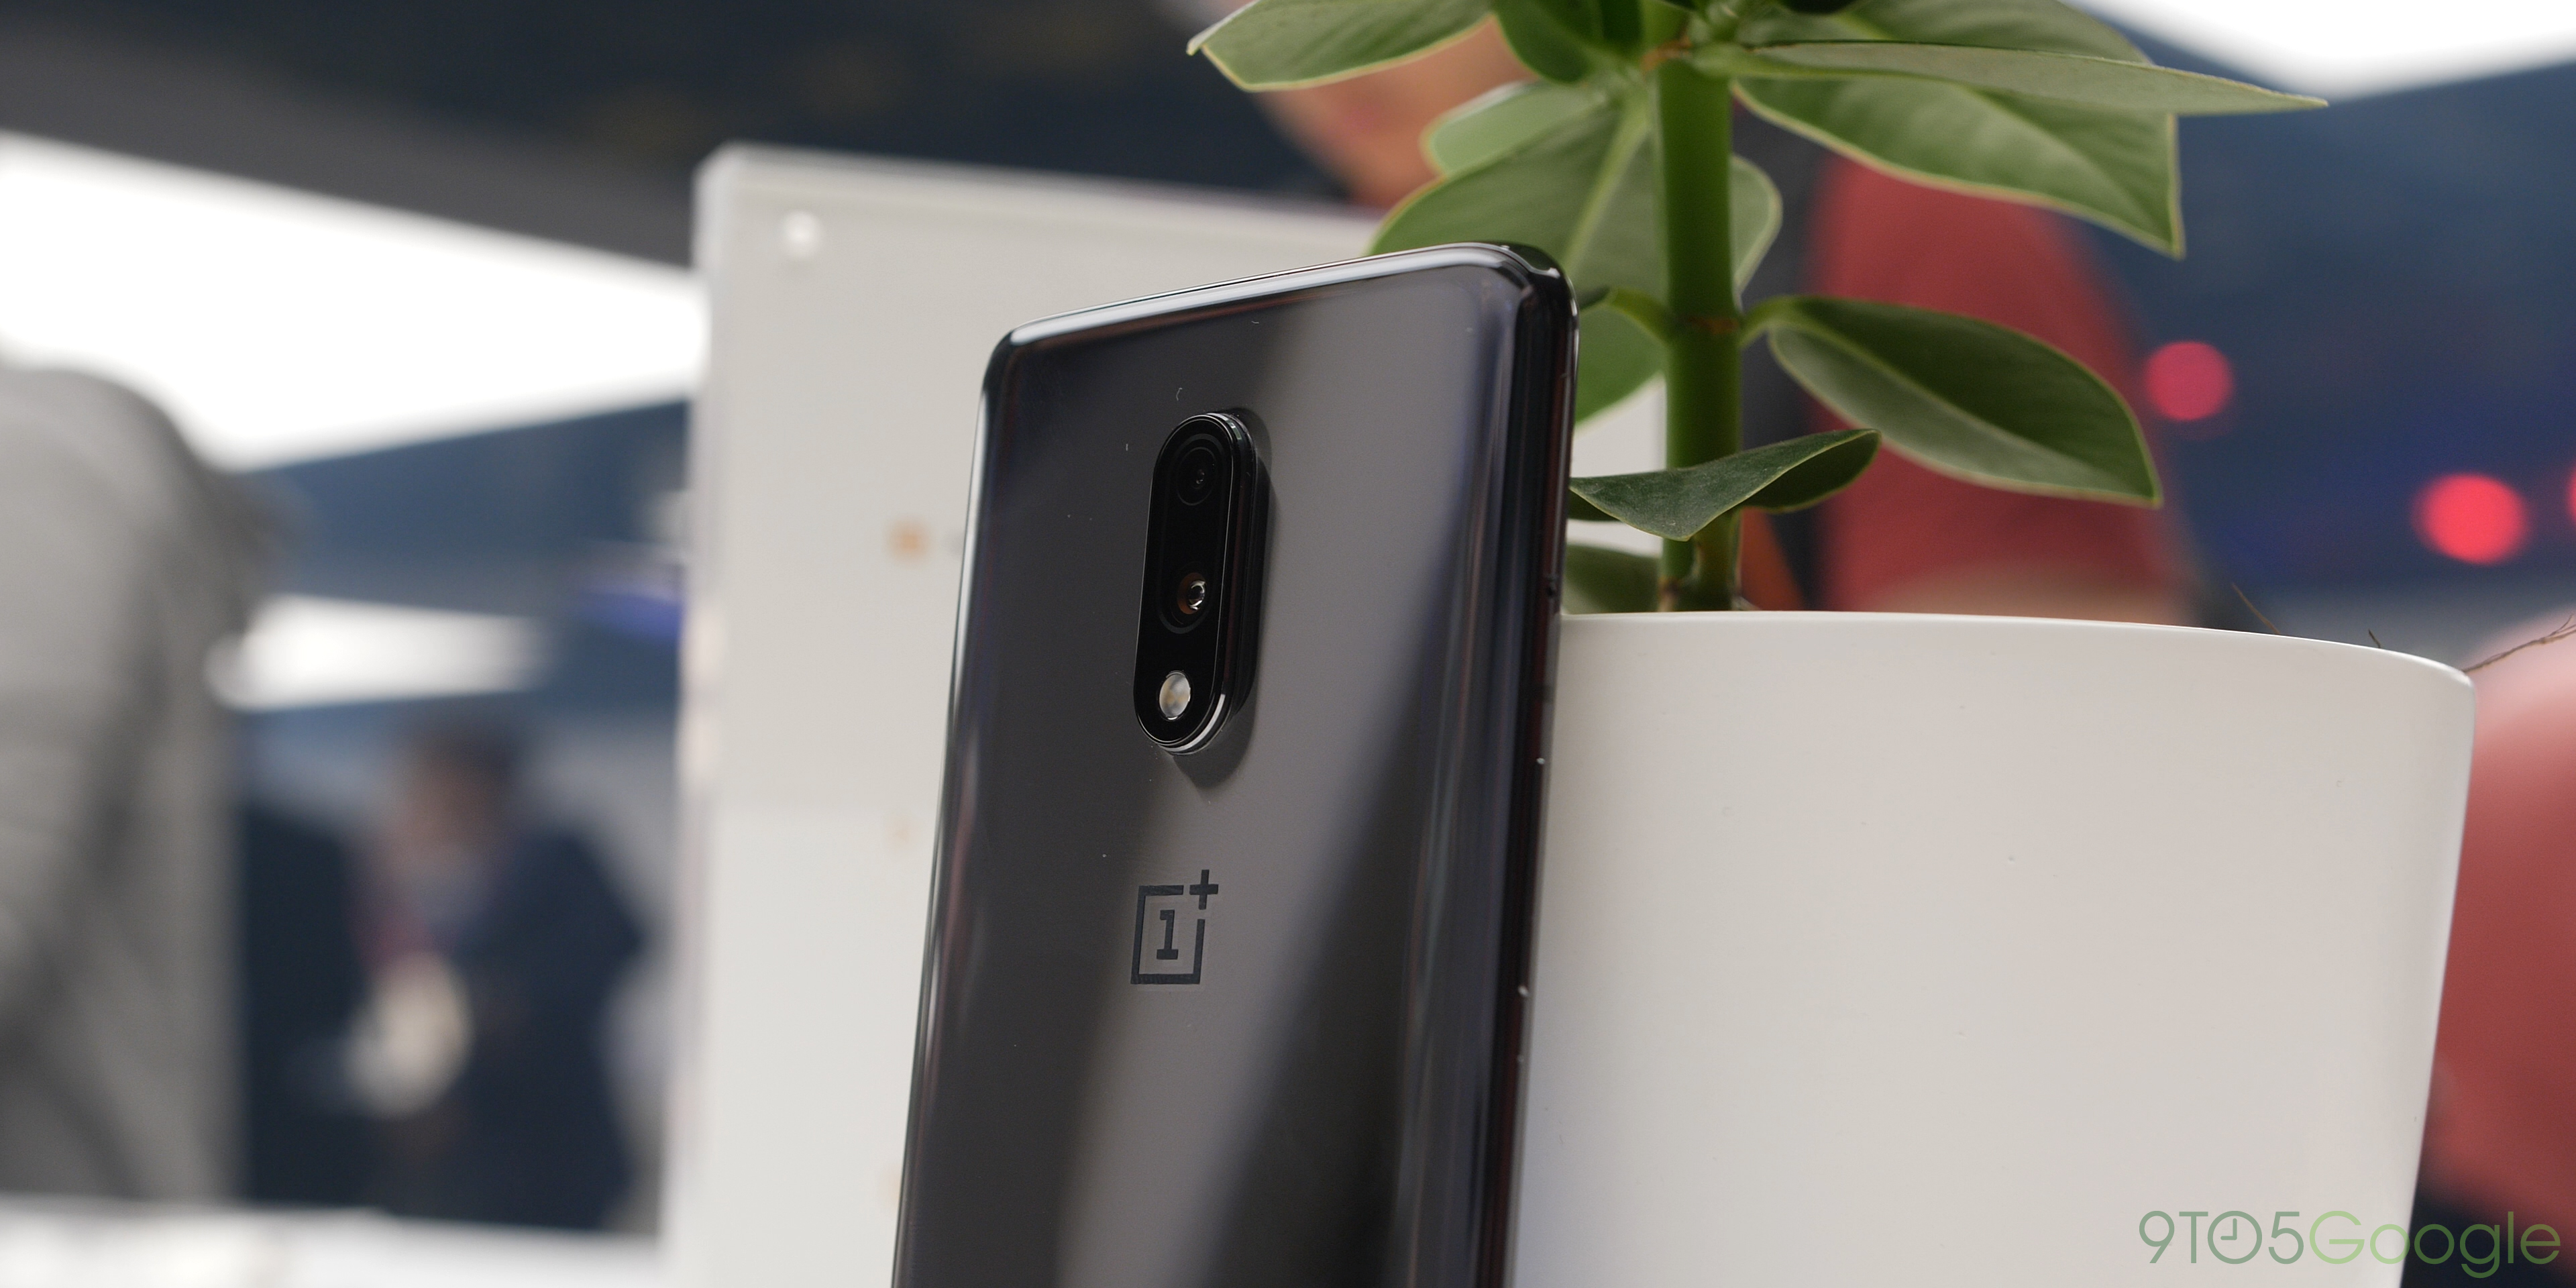 OnePlus 7 smartphone hands-on